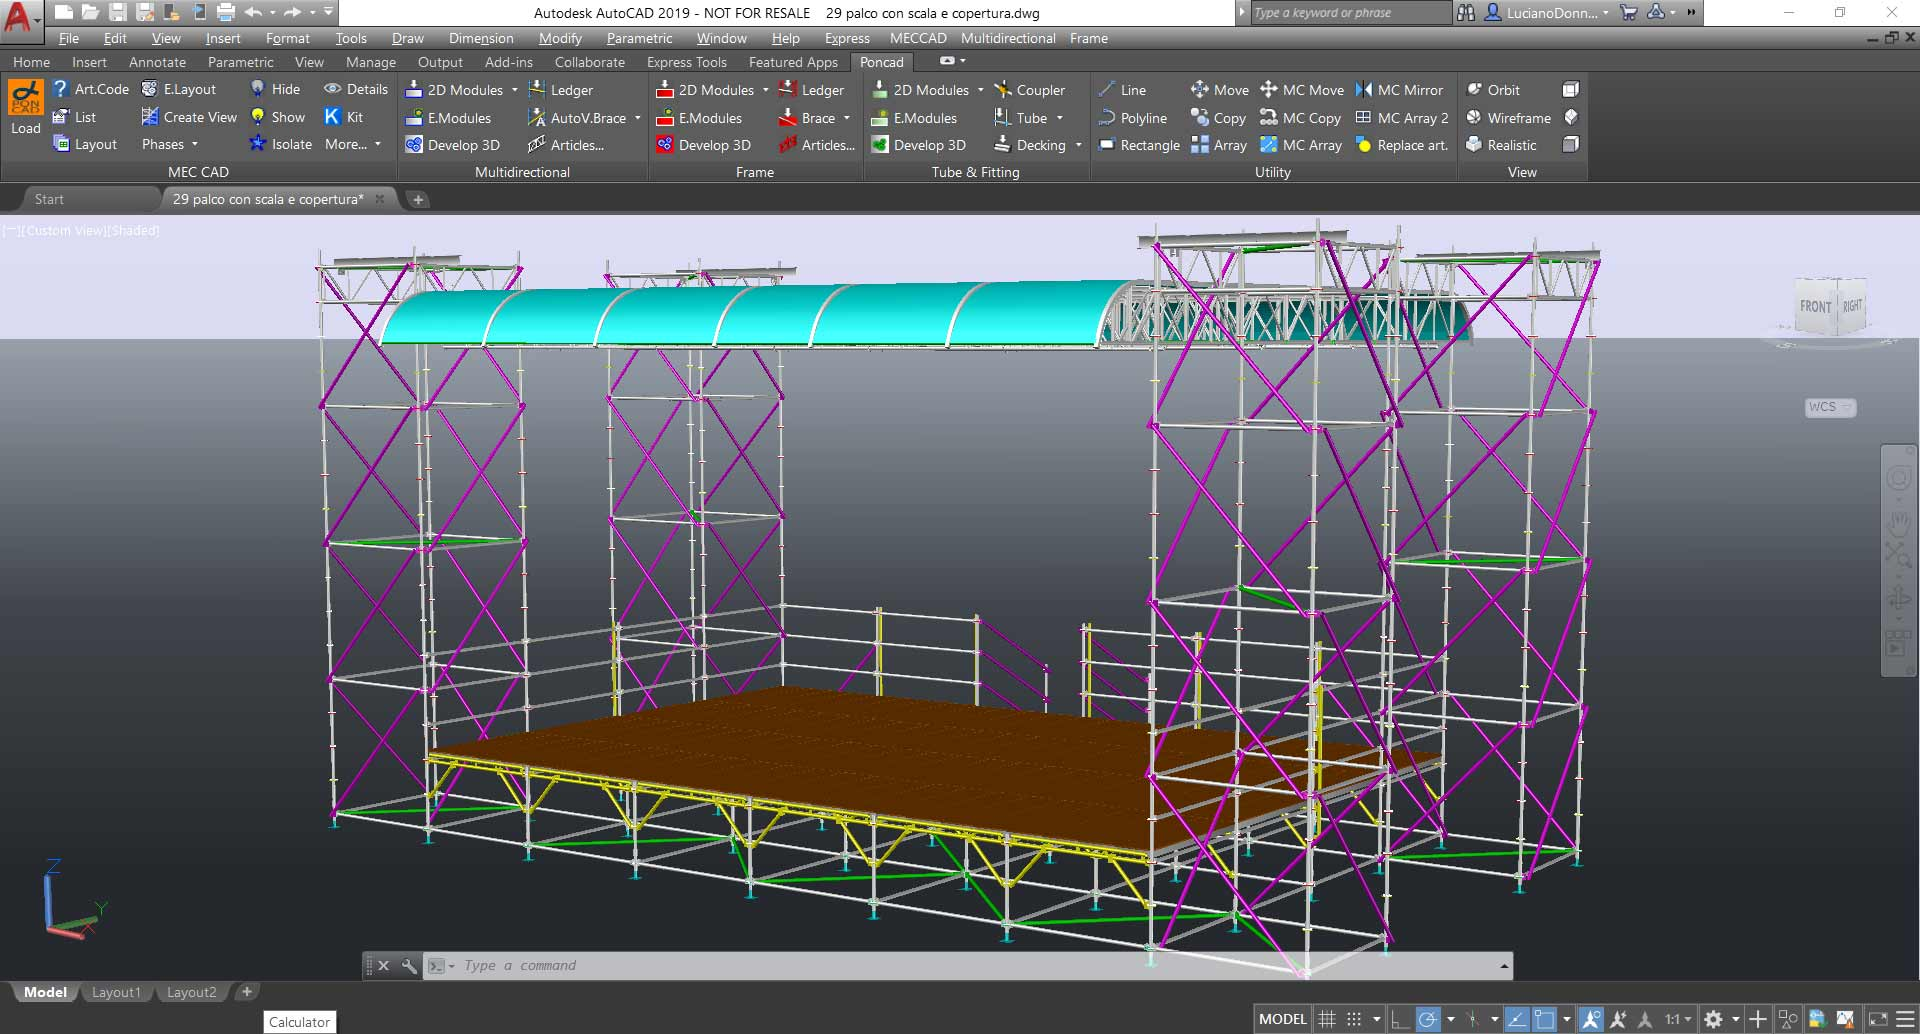 Scaffolding Designer software to Design & Estimate projects